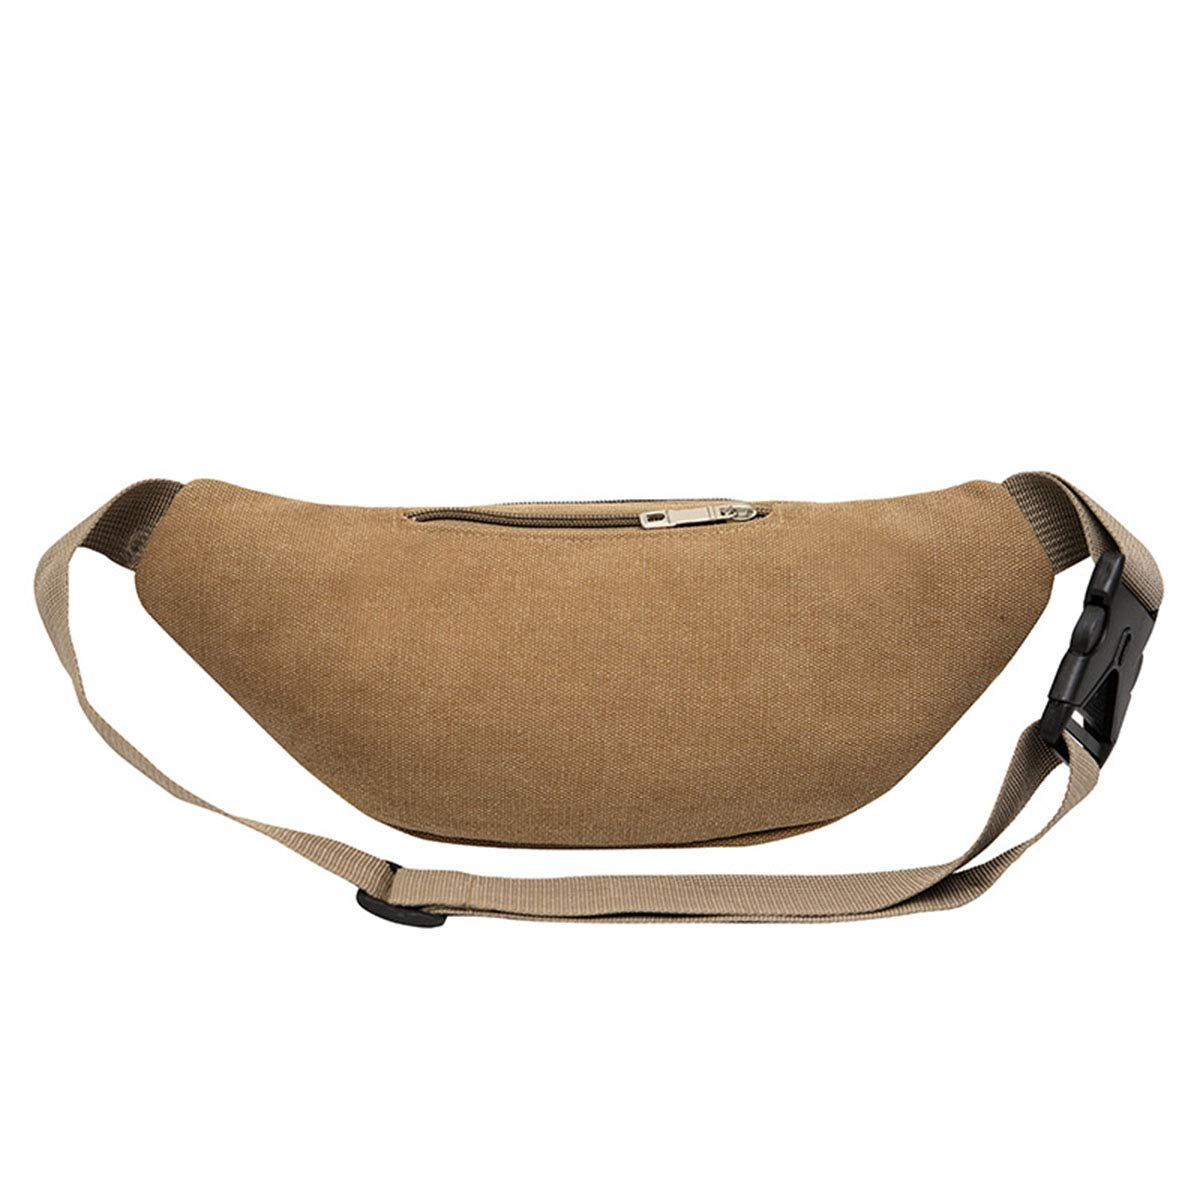 Bum Bag Large Capacity Travel Waist Pack for Women Men,Durable Waist Pouch Belt Bag for Walking Holidays Hiking Cycling Running Outdoor Sport,Khaki,211410CM